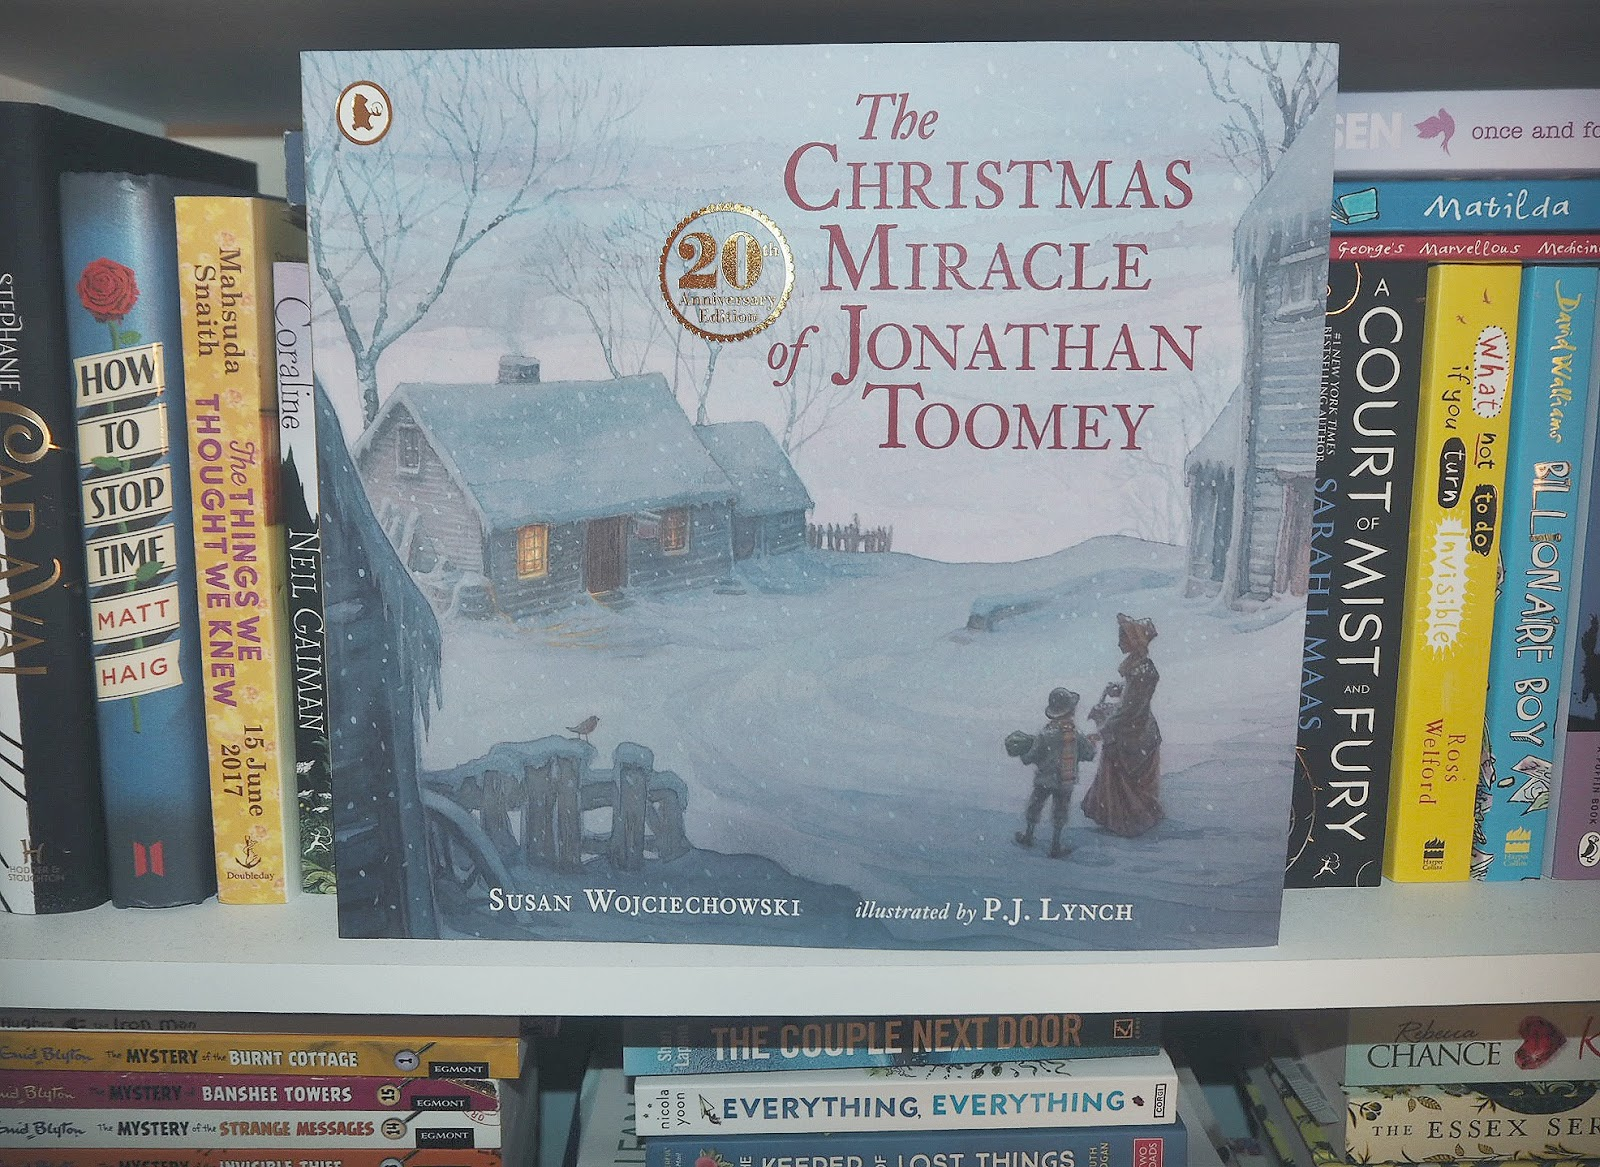 Exploring children's literature #1 – THE CHRISTMAS MIRACLE OF JONATHAN TOOMEY by Susan Wojciechowski | Hollie in Wanderlust | Book Review